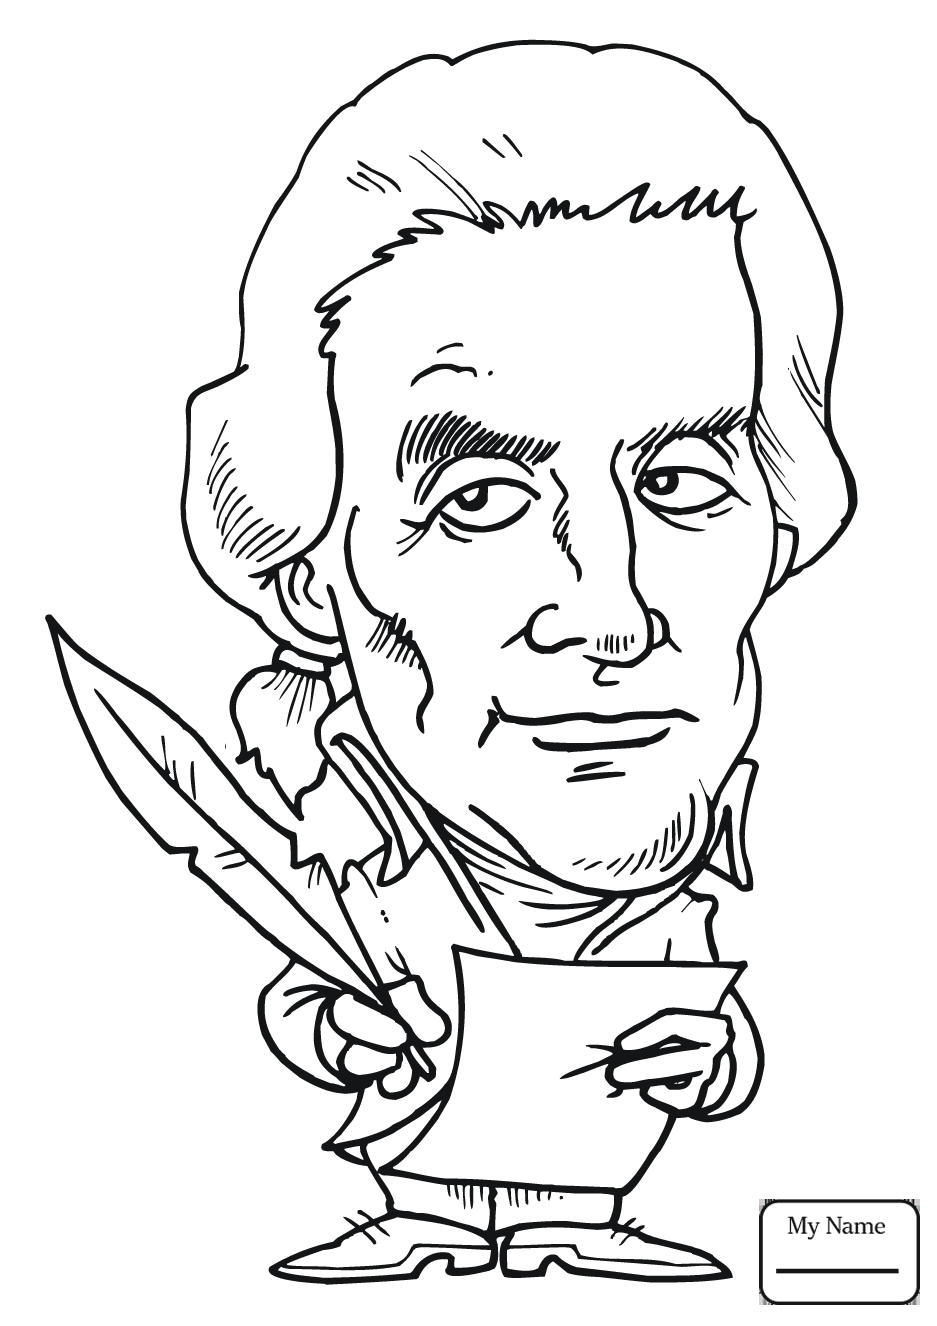 937x1326 Coloring Pages For Kids Barack Obama The President Of The Usa